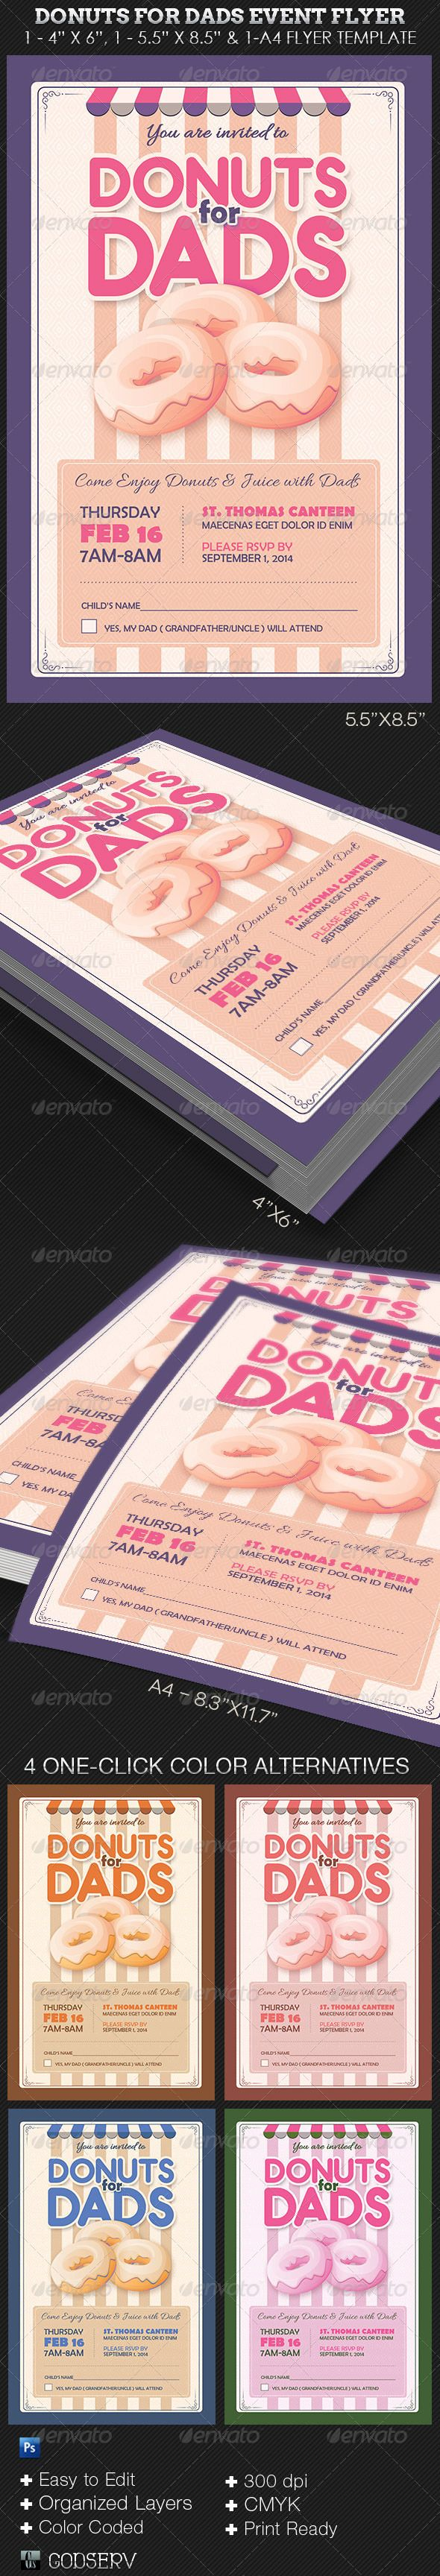 "Donuts for Dads Event Flyer Template - $6.00 The Donuts for Dads Event Flyer Template has a retro design that fits with a festive event for Dads. Great for schools, churches and other events. The templates are conveniently easy to use. All you need to do is, ""Edit, Save, Print'"